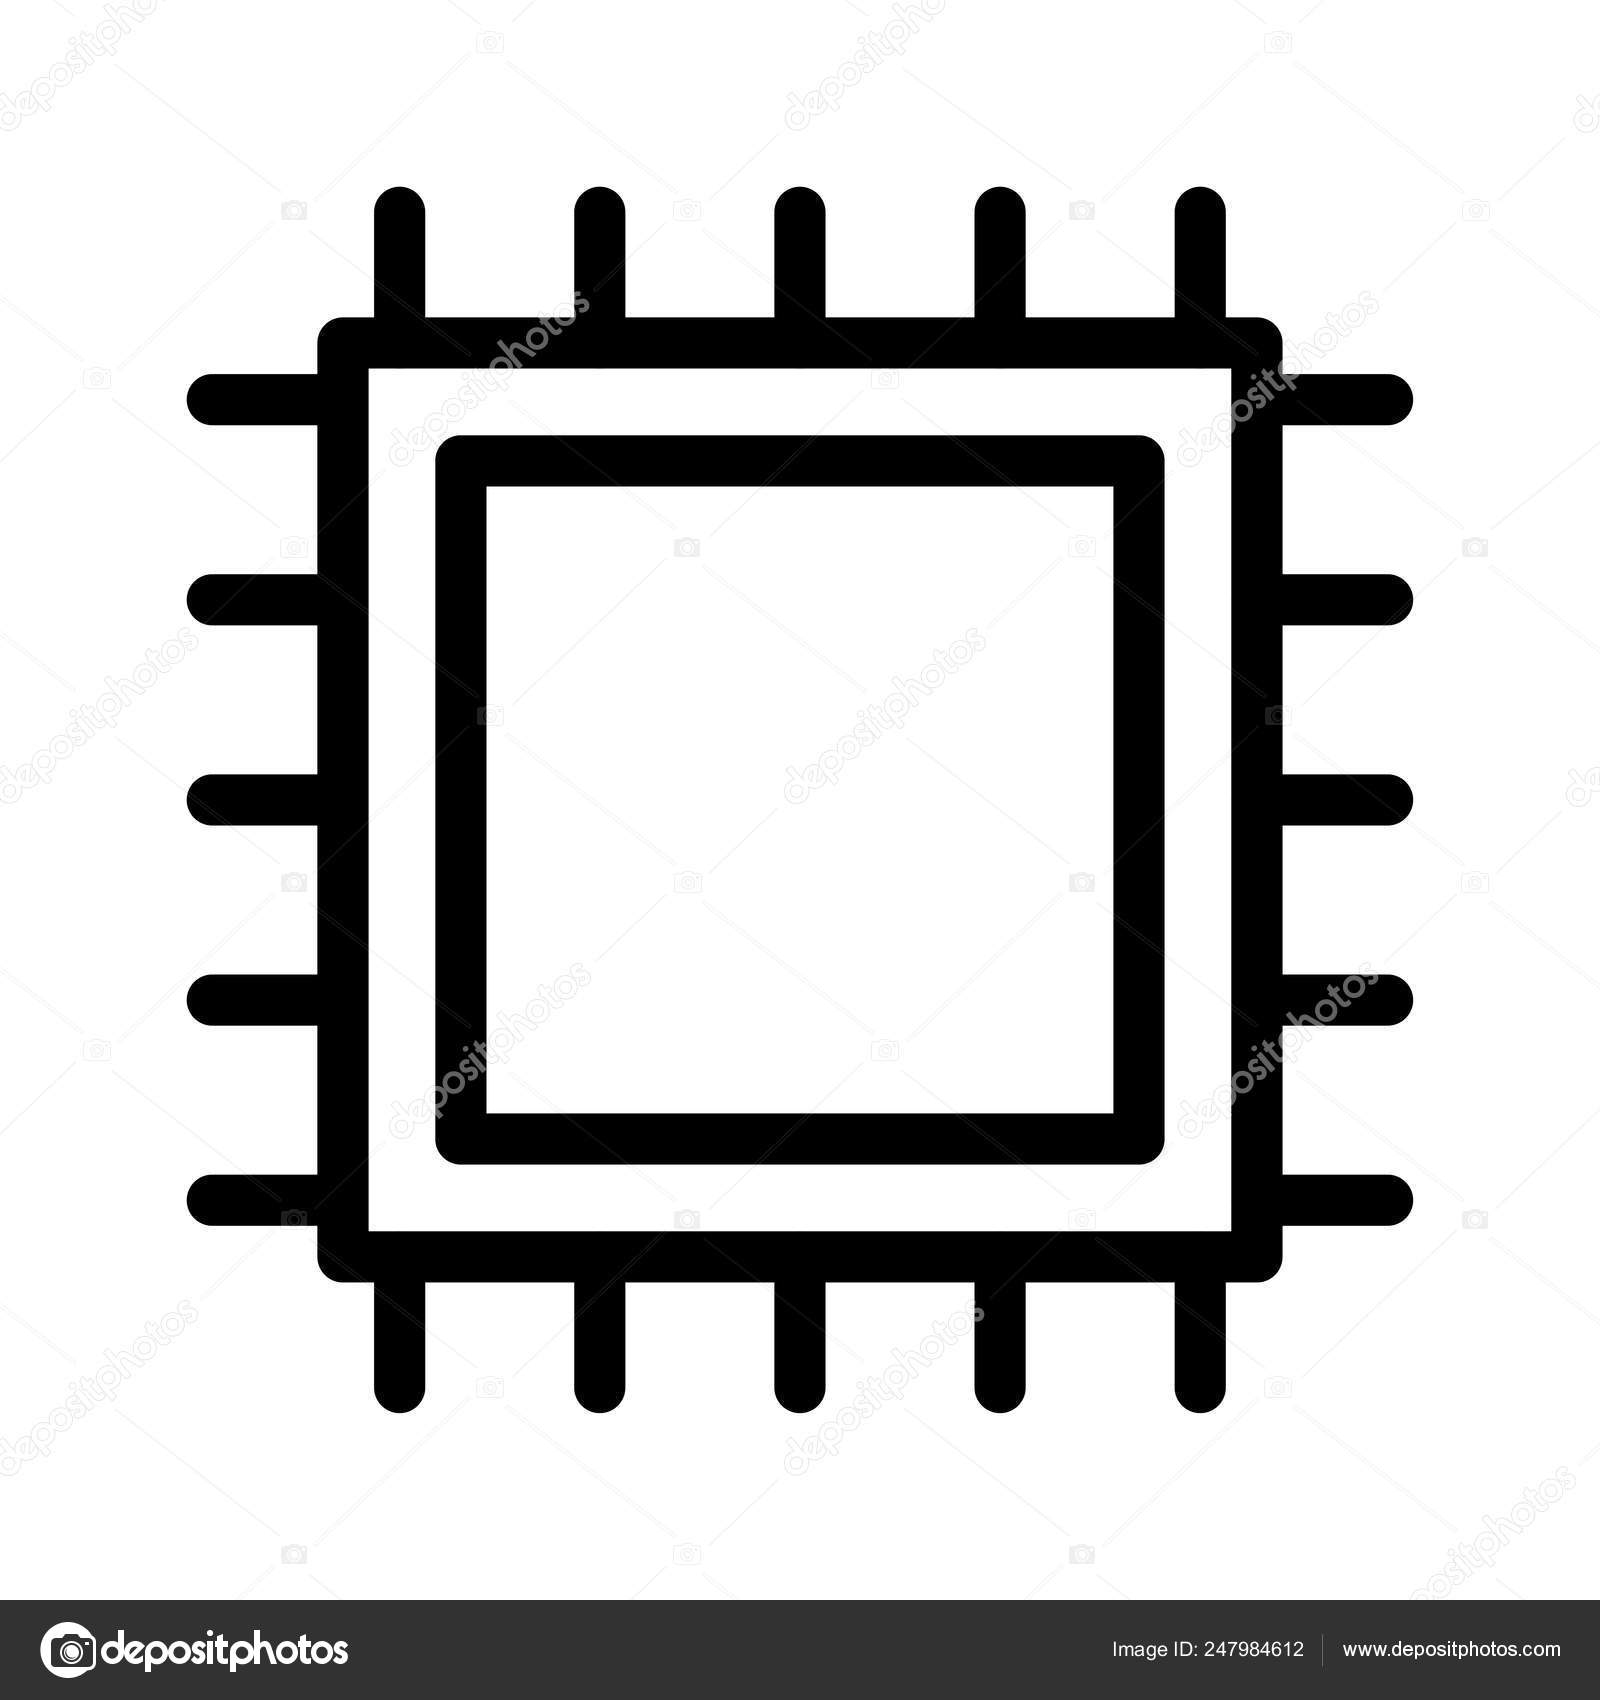 chip processor cpu vector illustration stock vector c dinosoftlabs 247984612 https depositphotos com 247984612 stock illustration chip processor cpu vector illustration html